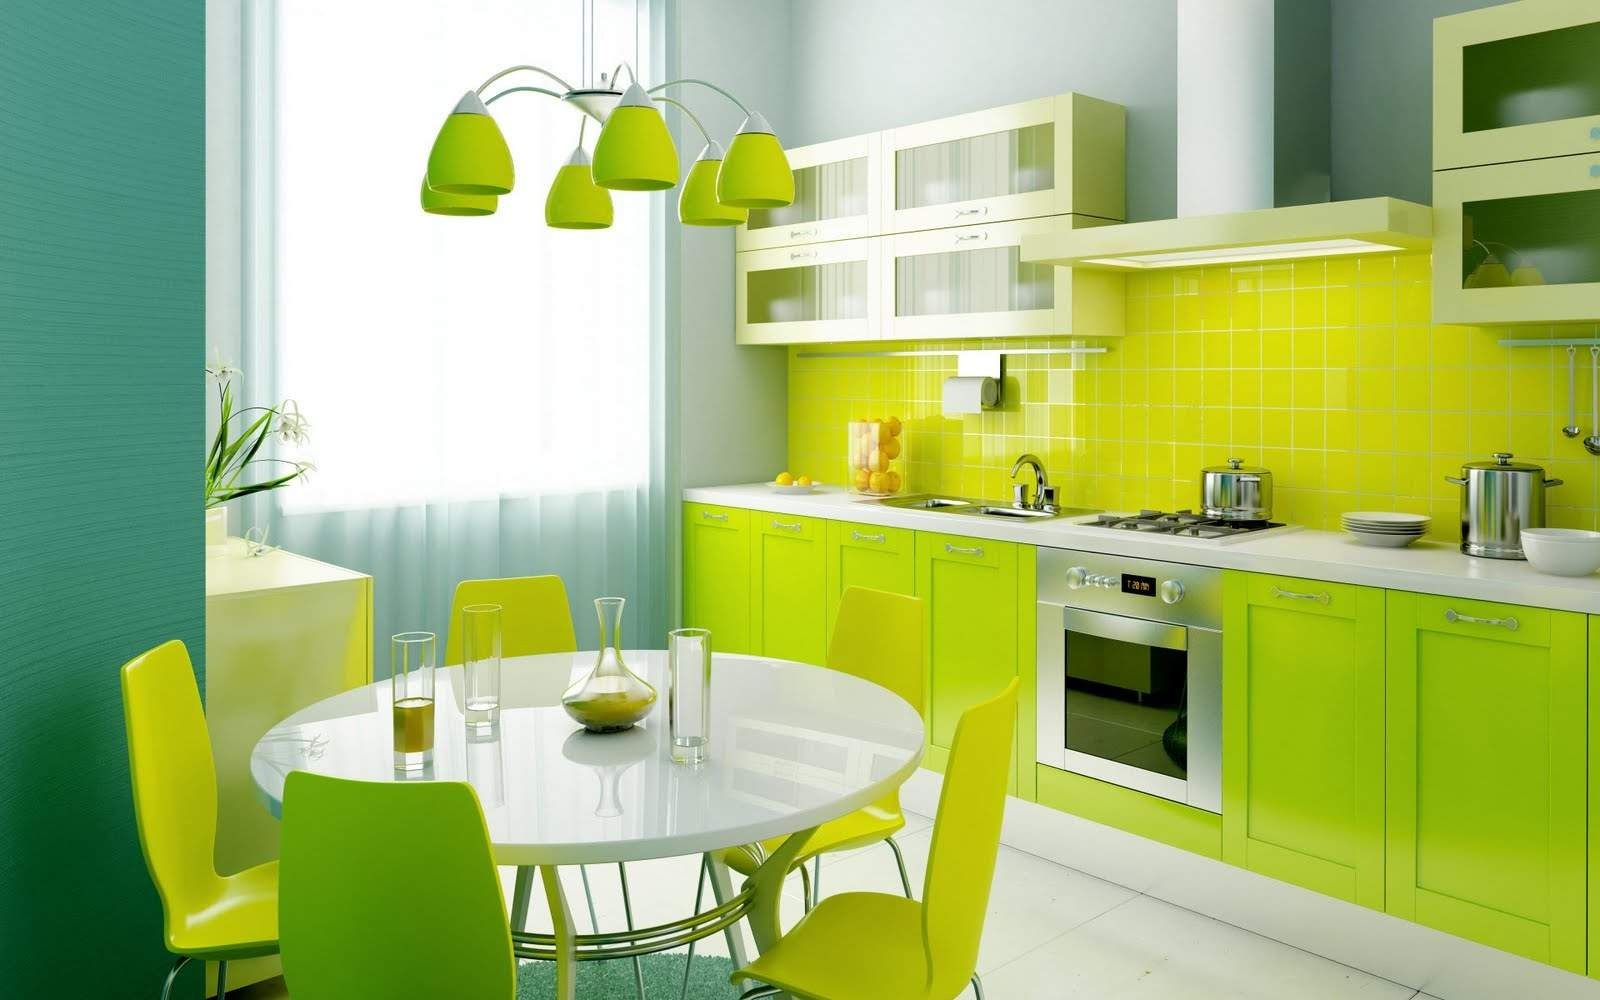 1000+ images about Interior Decoration on Pinterest - ^